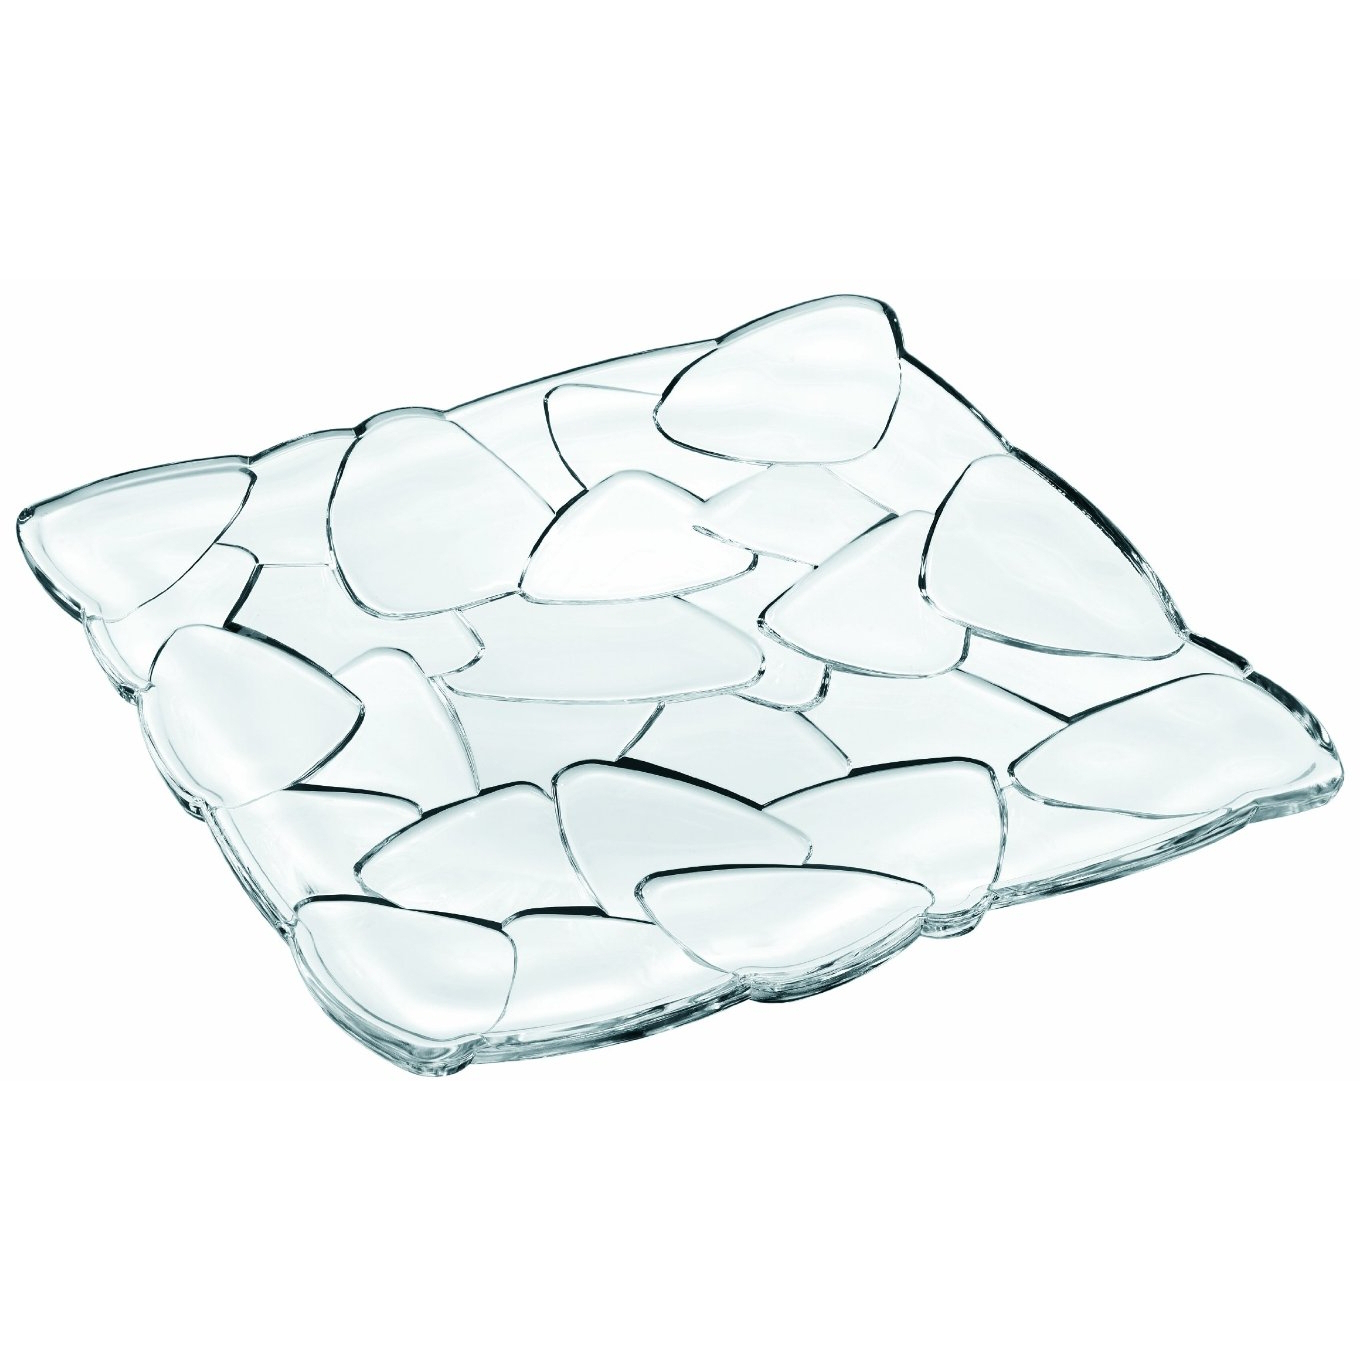 Nachtmann Petals Square Crystal Plate, 11 Inch